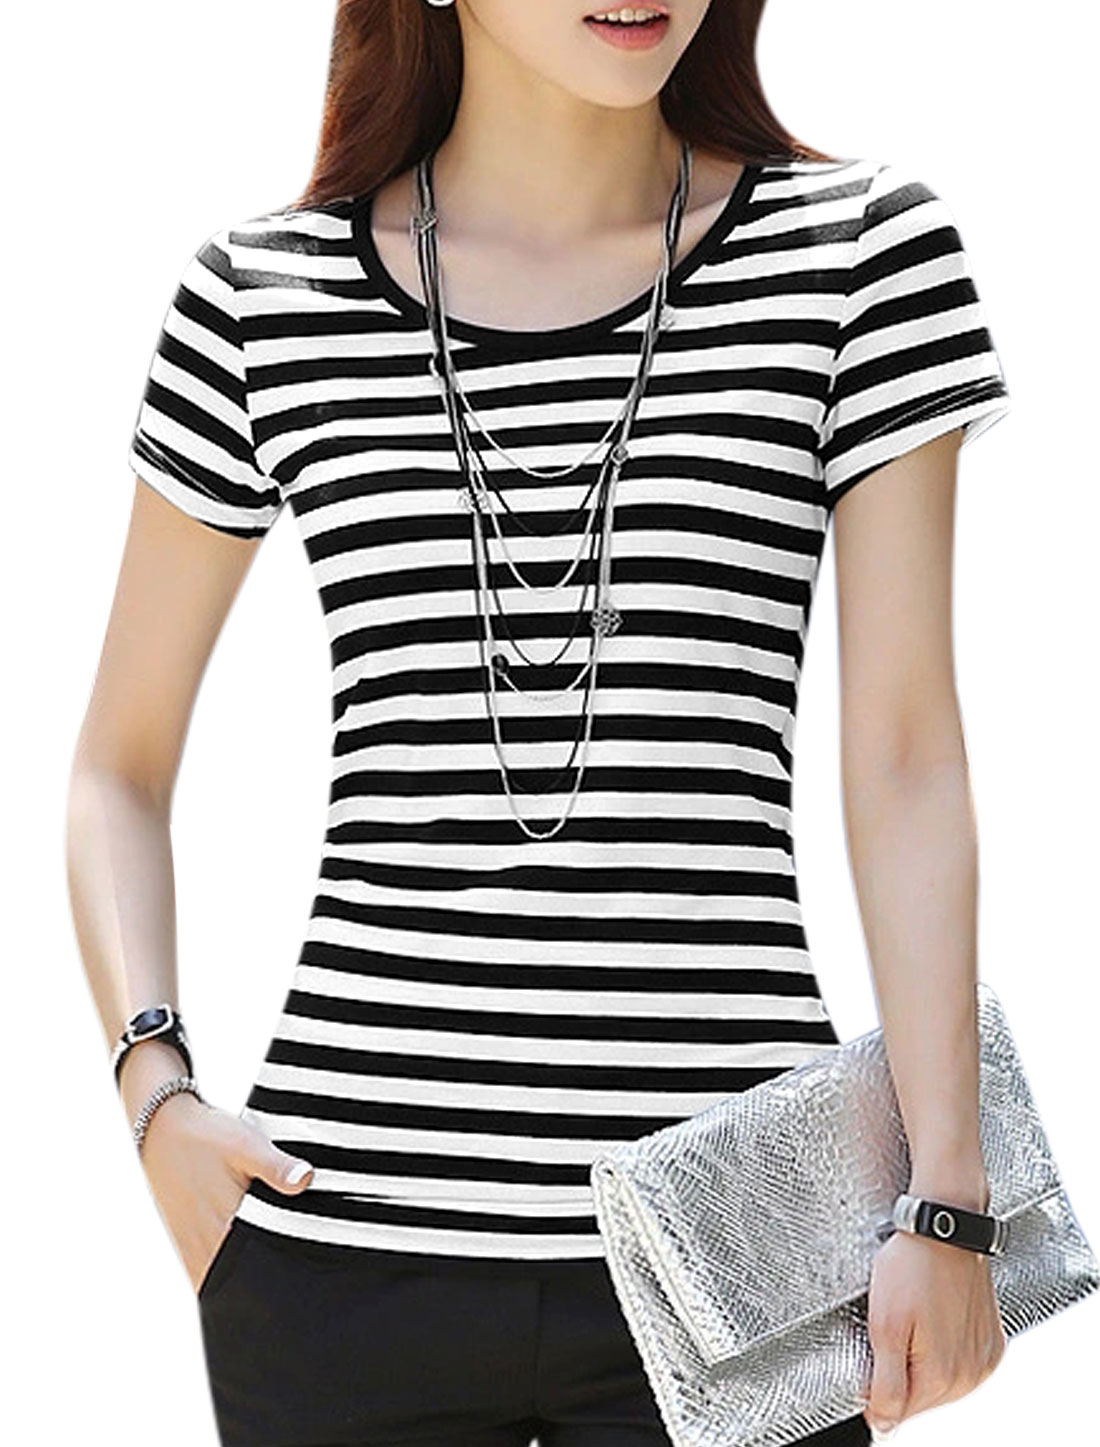 Lady Stripes Floral Design Hollow Out Back Tee Black White M